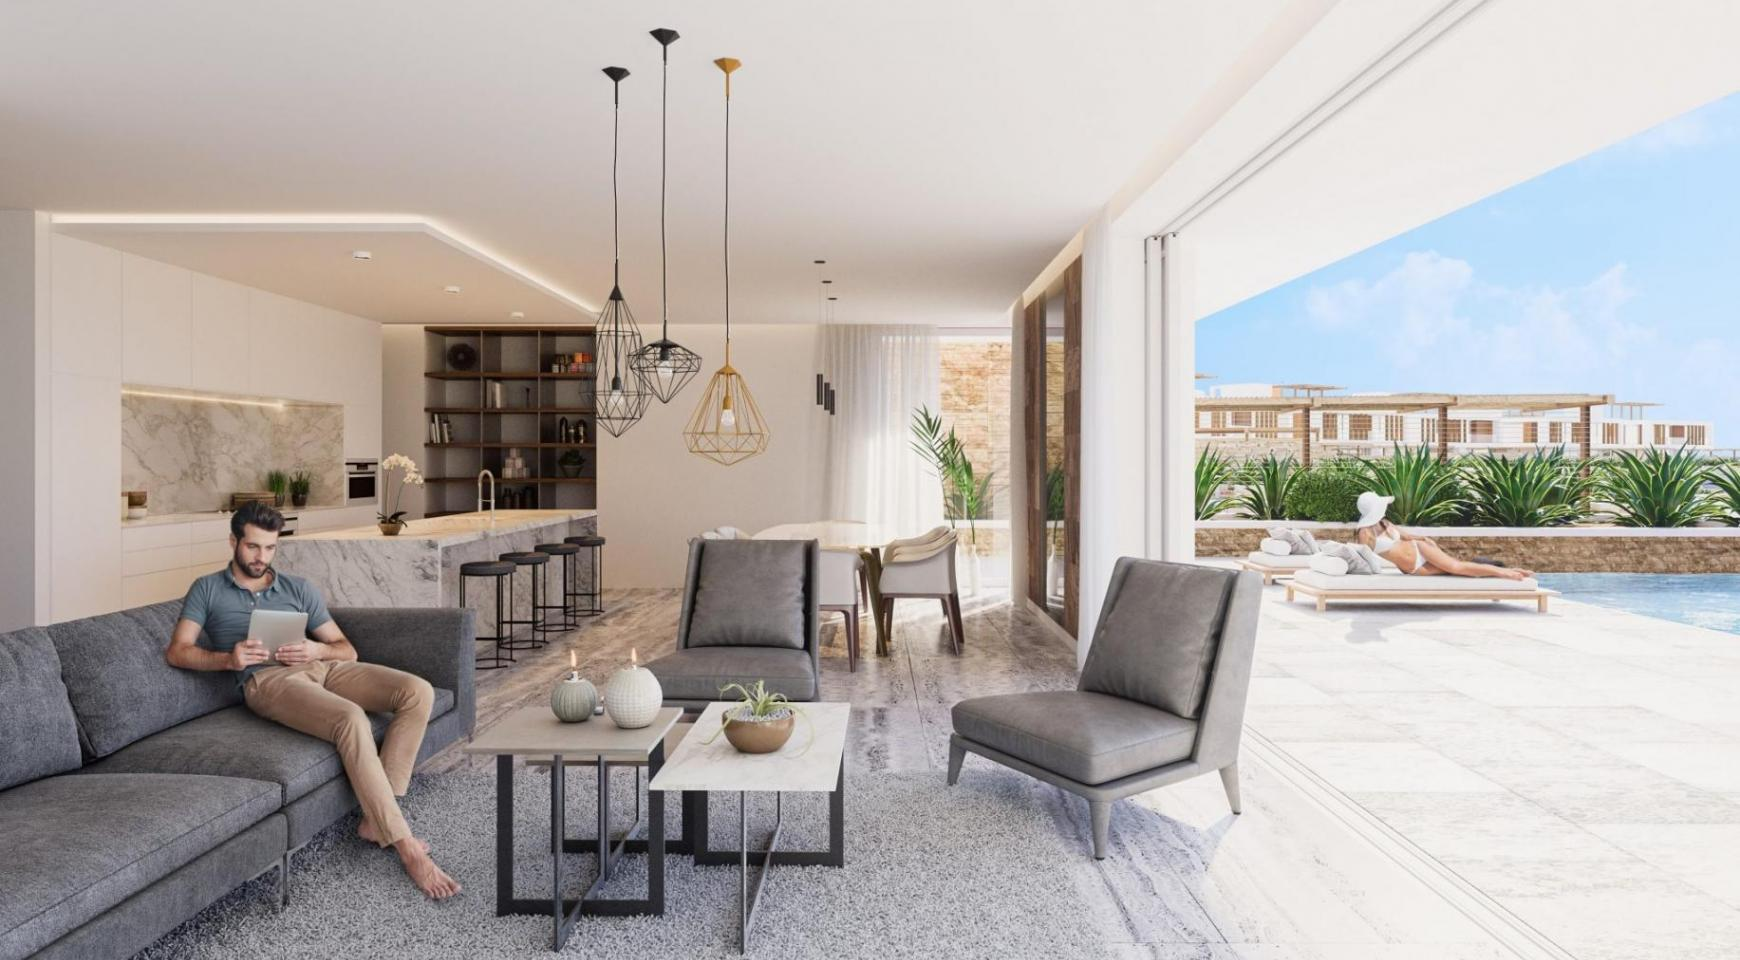 Stunning 3 Bedroom Villa in an Exclusive Project by the Sea - 8